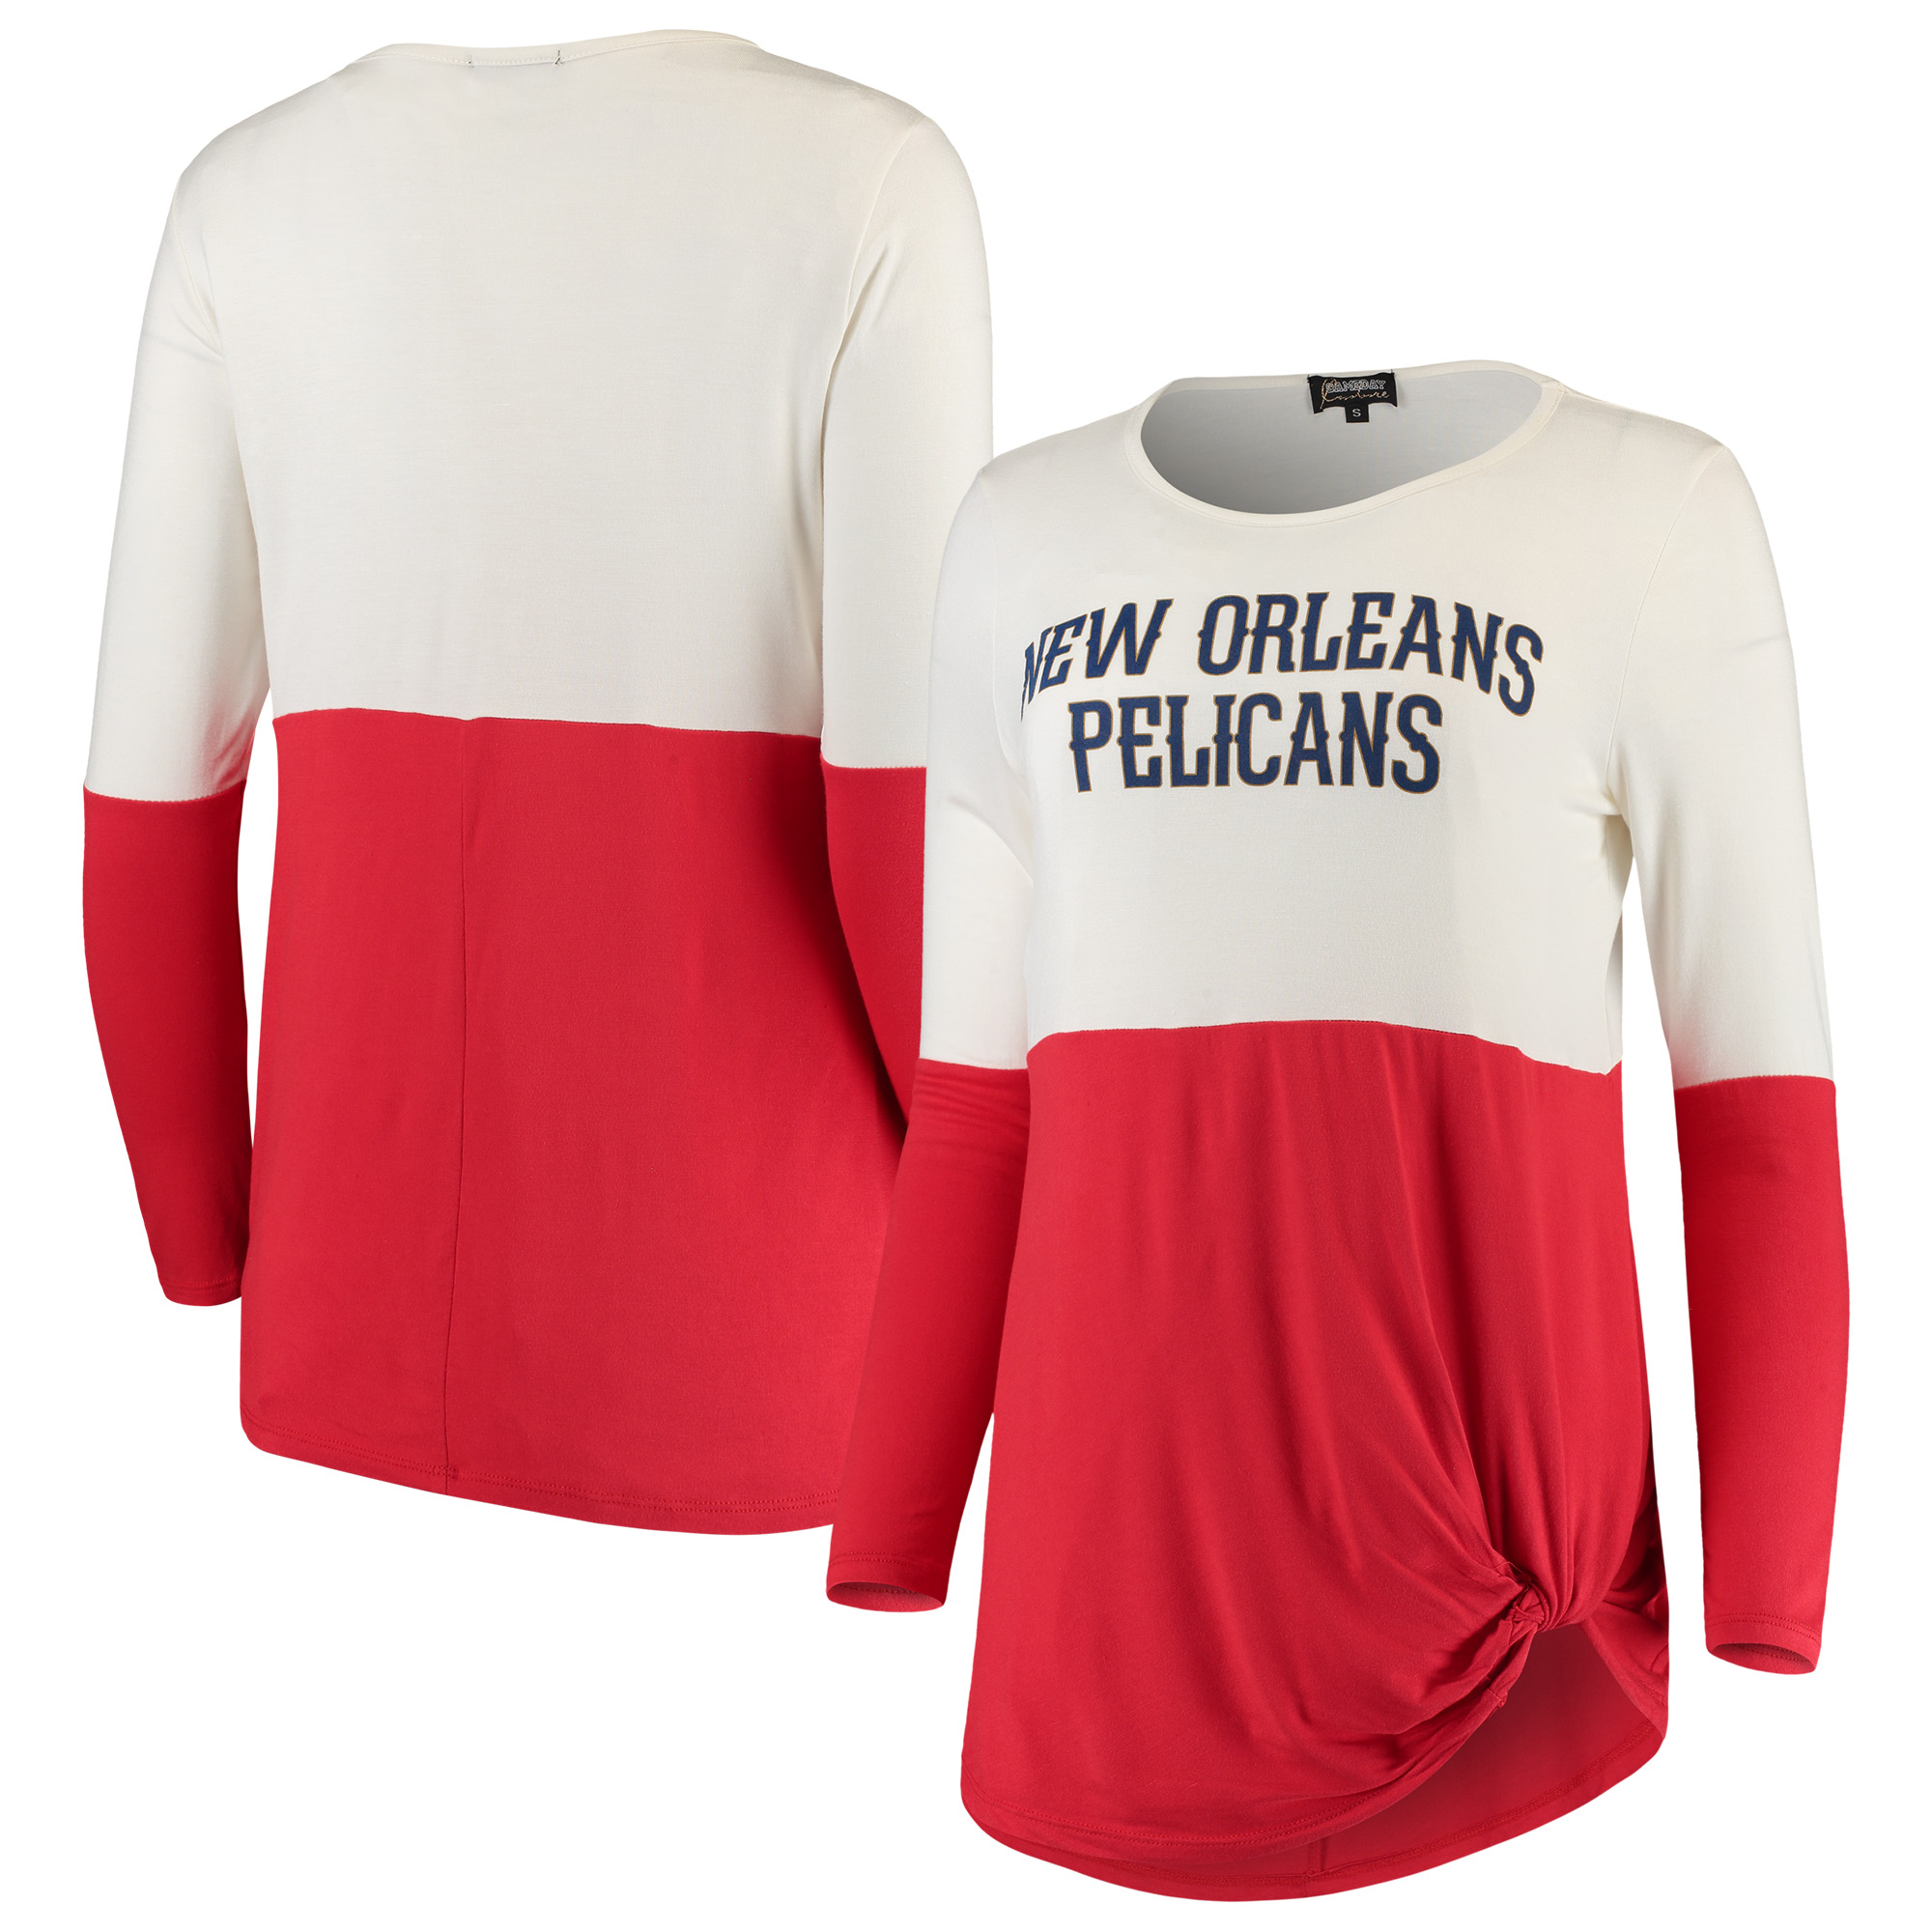 New Orleans Pelicans Women's In It To Win It Colorblock Long Sleeve T-Shirt - Red